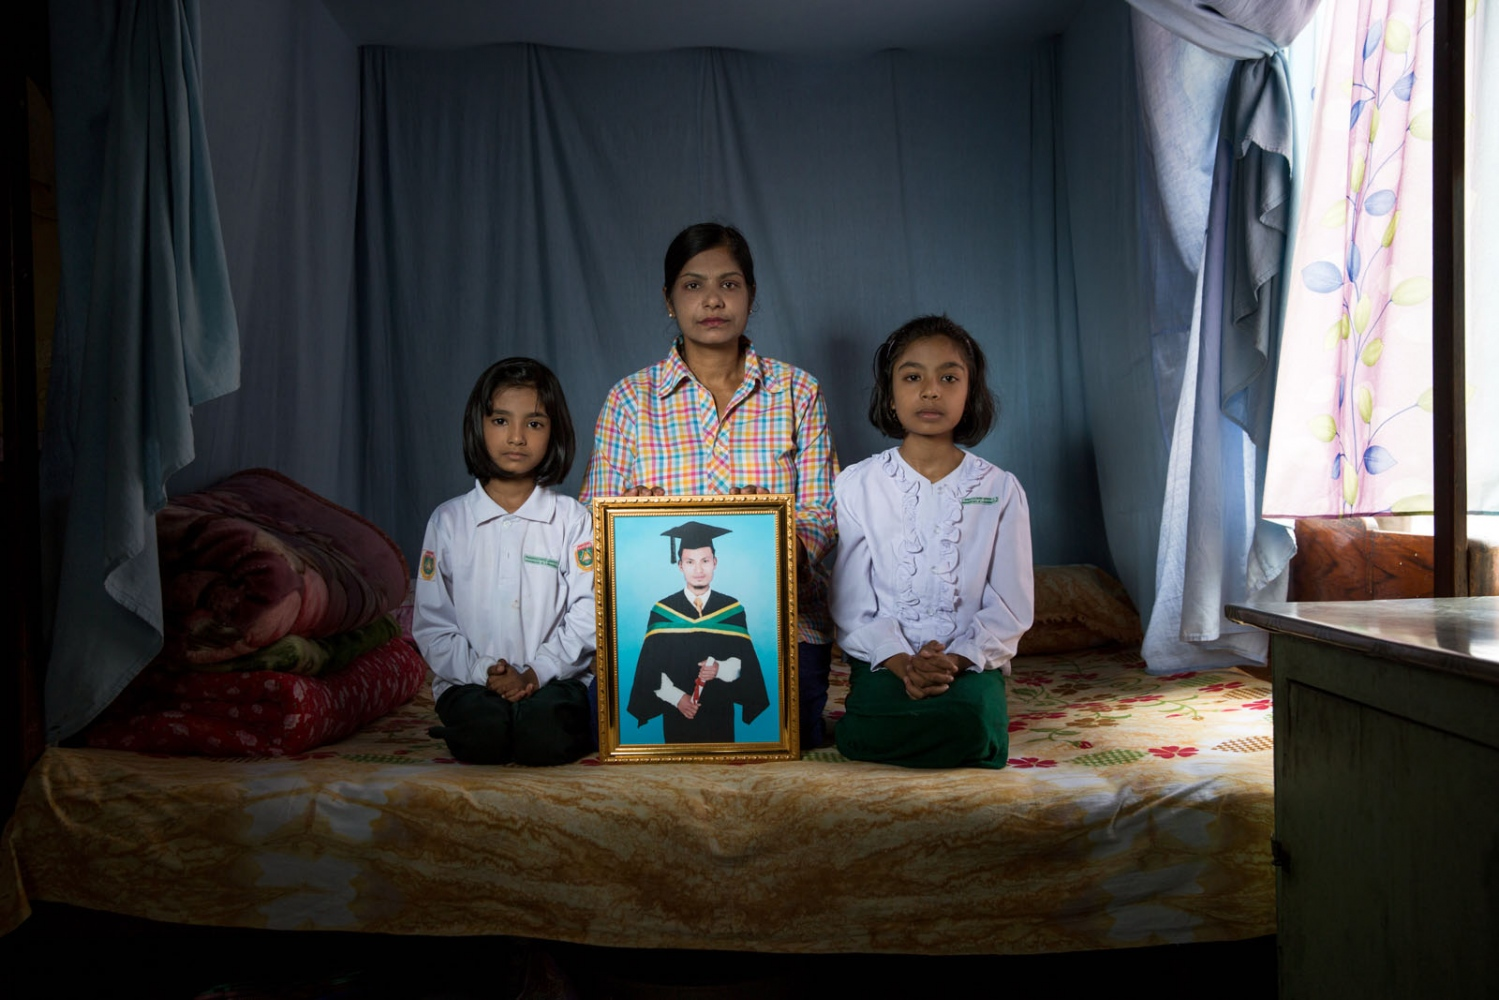 The wife and two daughters of arbitrarily detained Than Khaing hold his portrait in the family bed where they all sleep. Myanmar military intelligence arrested 32-year old Than Khaing, father of two, while he was traveling to attend the wedding of his friend Myo Myint Htun in Kunhein, Shan State on August 4, 2014.  The Taunggyi District Court sentenced him in a trial that failed to meet fair trial standards to 14 years' imprisonment with hard labor under the sections 5(J) and 5(L) of the 1950 Emergency Provisions Act. In October 2016, the Myanmar government repealed the notoriously controversial 1950 Emergency Provisions Act, yet Than Khaing and others remain detained under the now defunct Act.